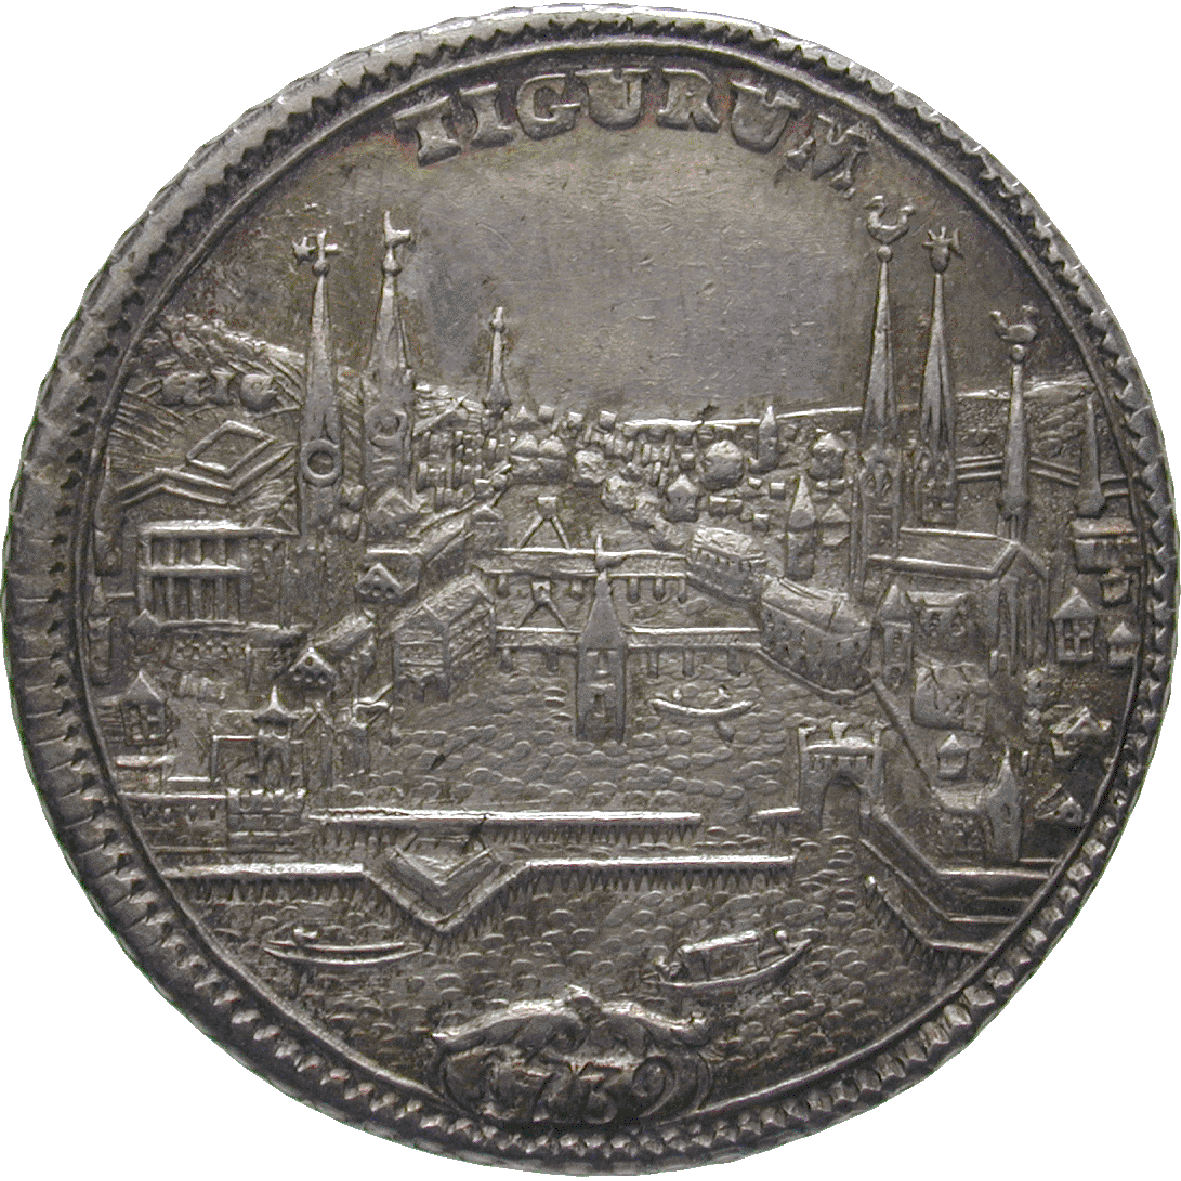 Republic of Zurich, 1/2 Taler 1739 (reverse)